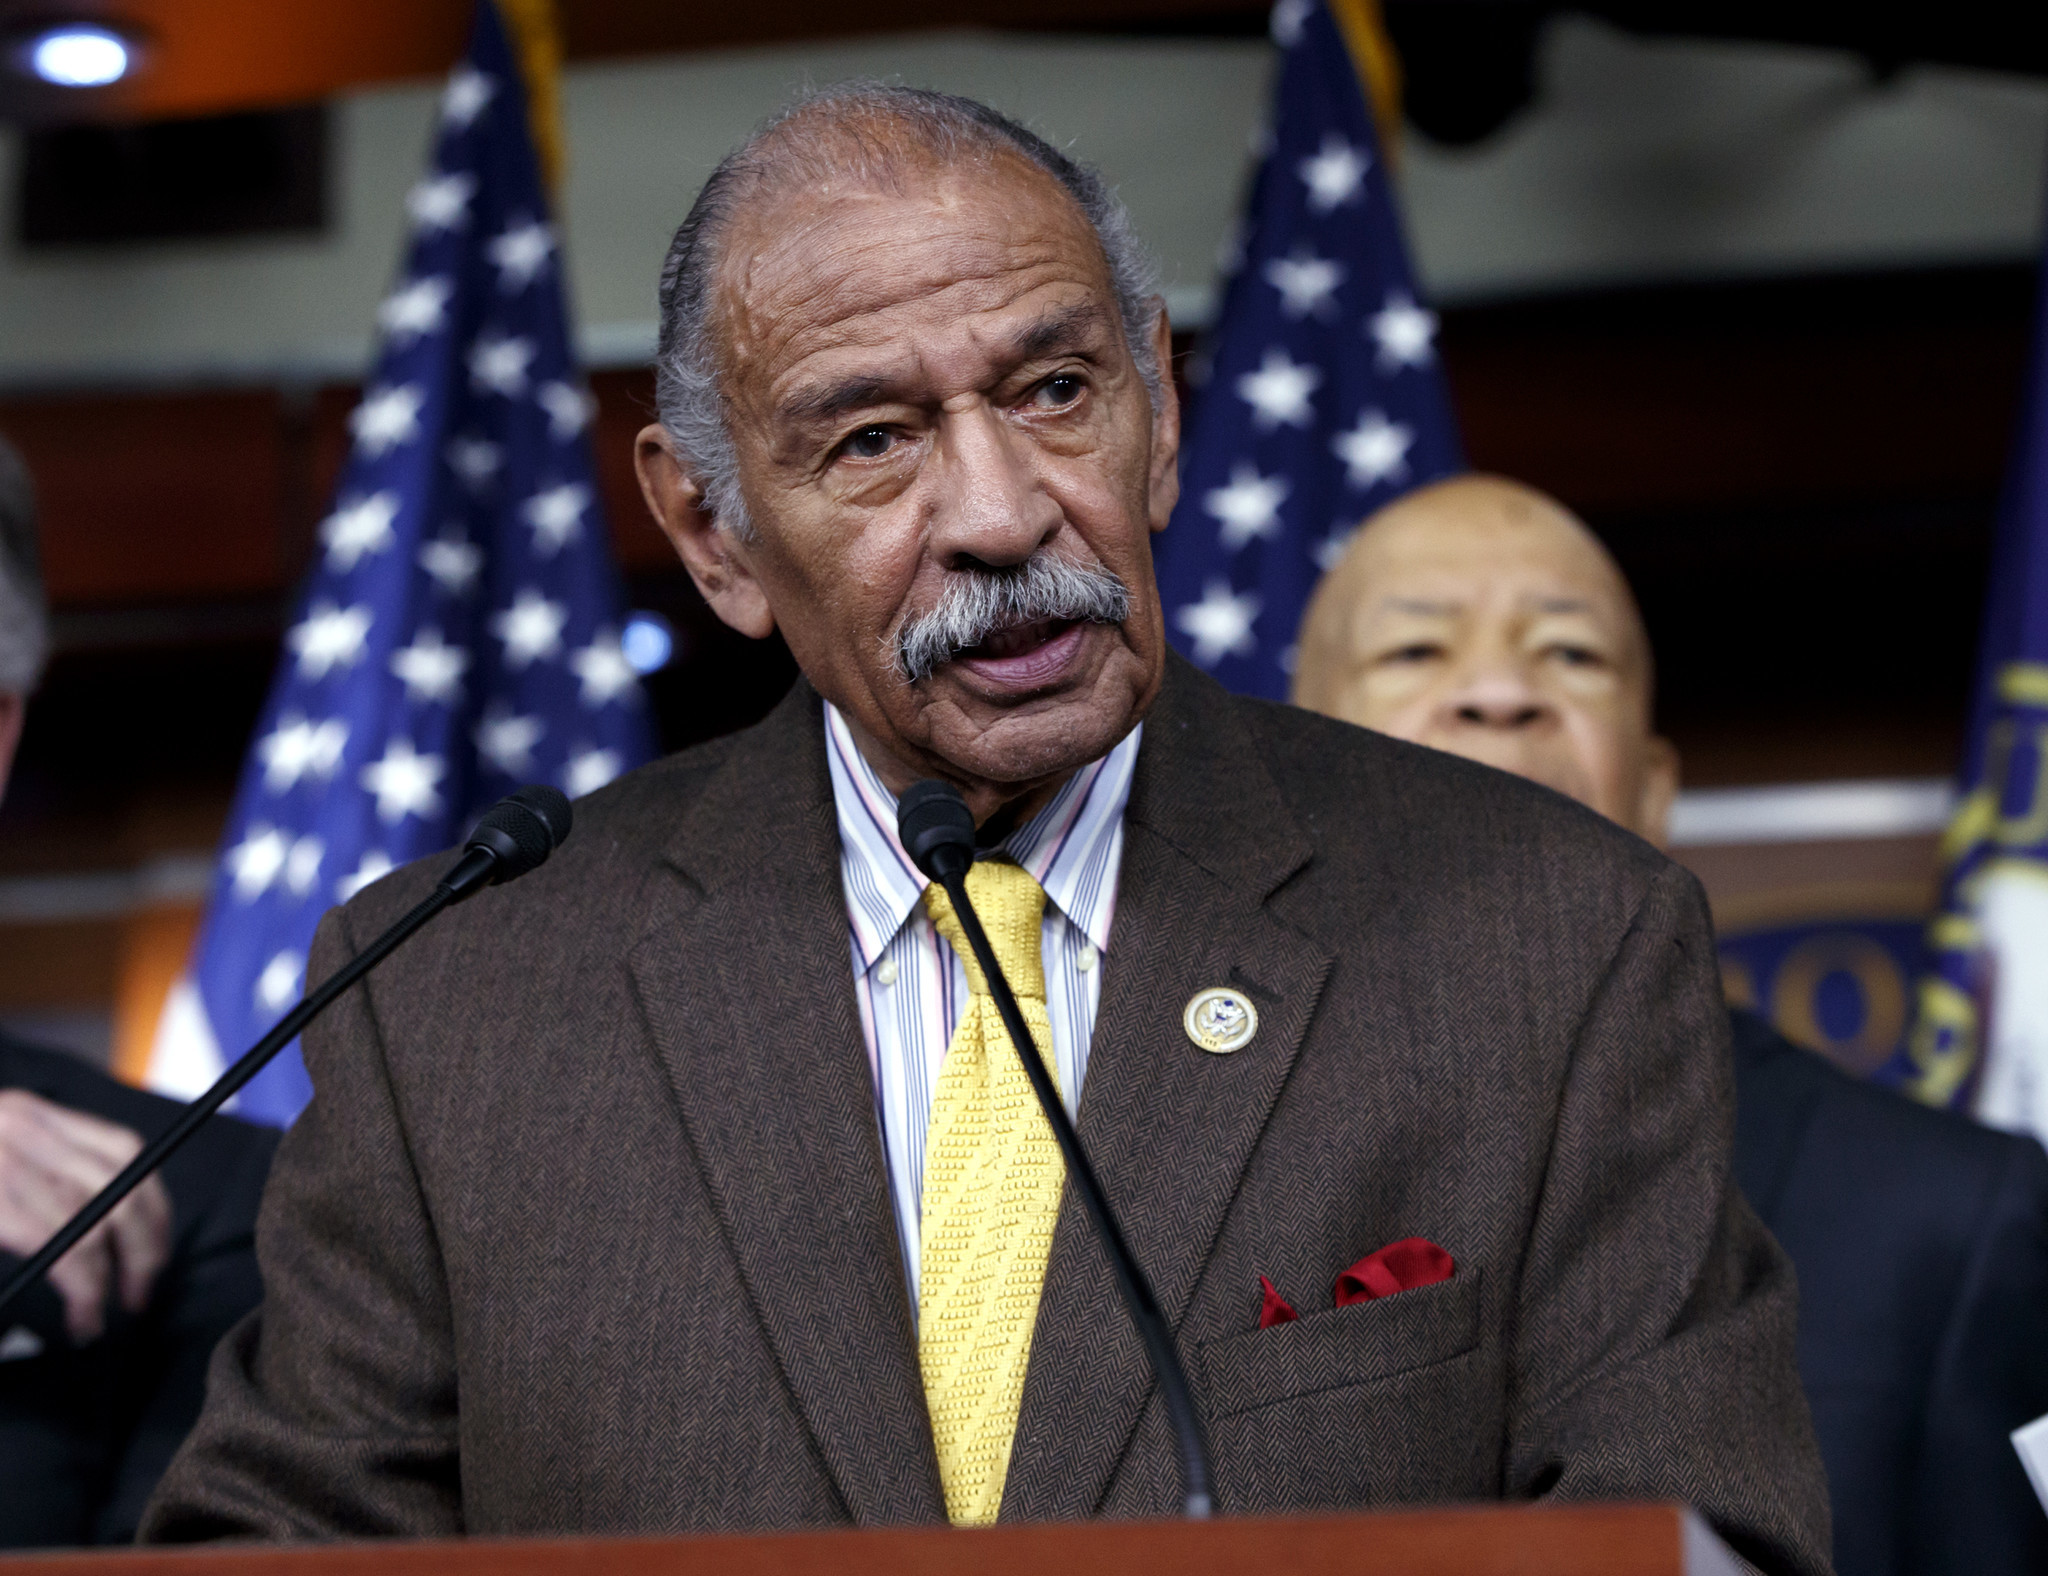 Rep. John Conyers, longest-serving African-American member of House, dies age 90